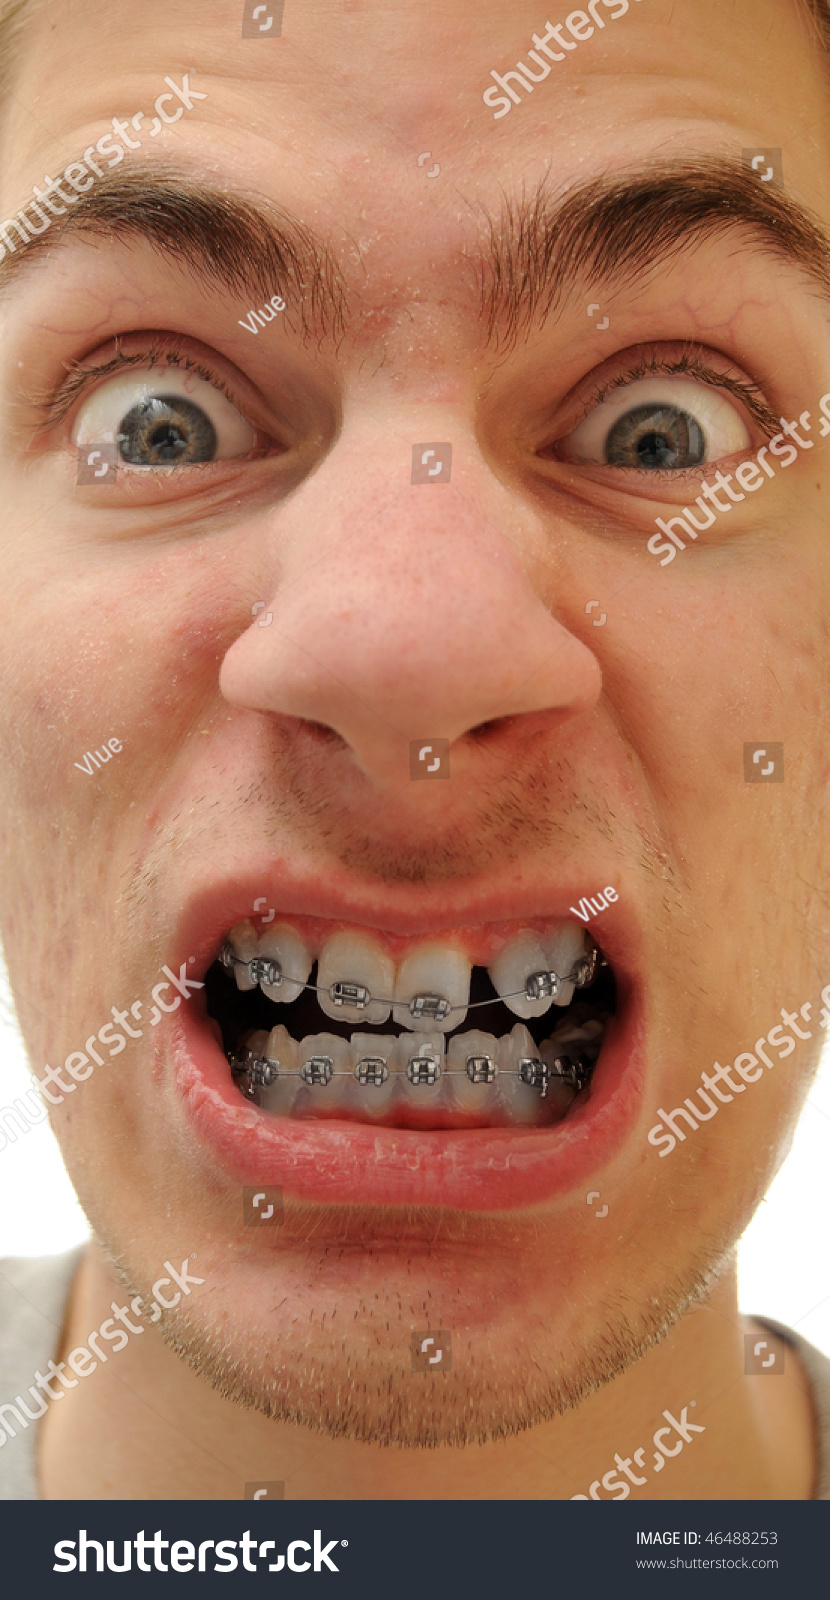 Young White Causcasian Man Shows Off His New Braces On His